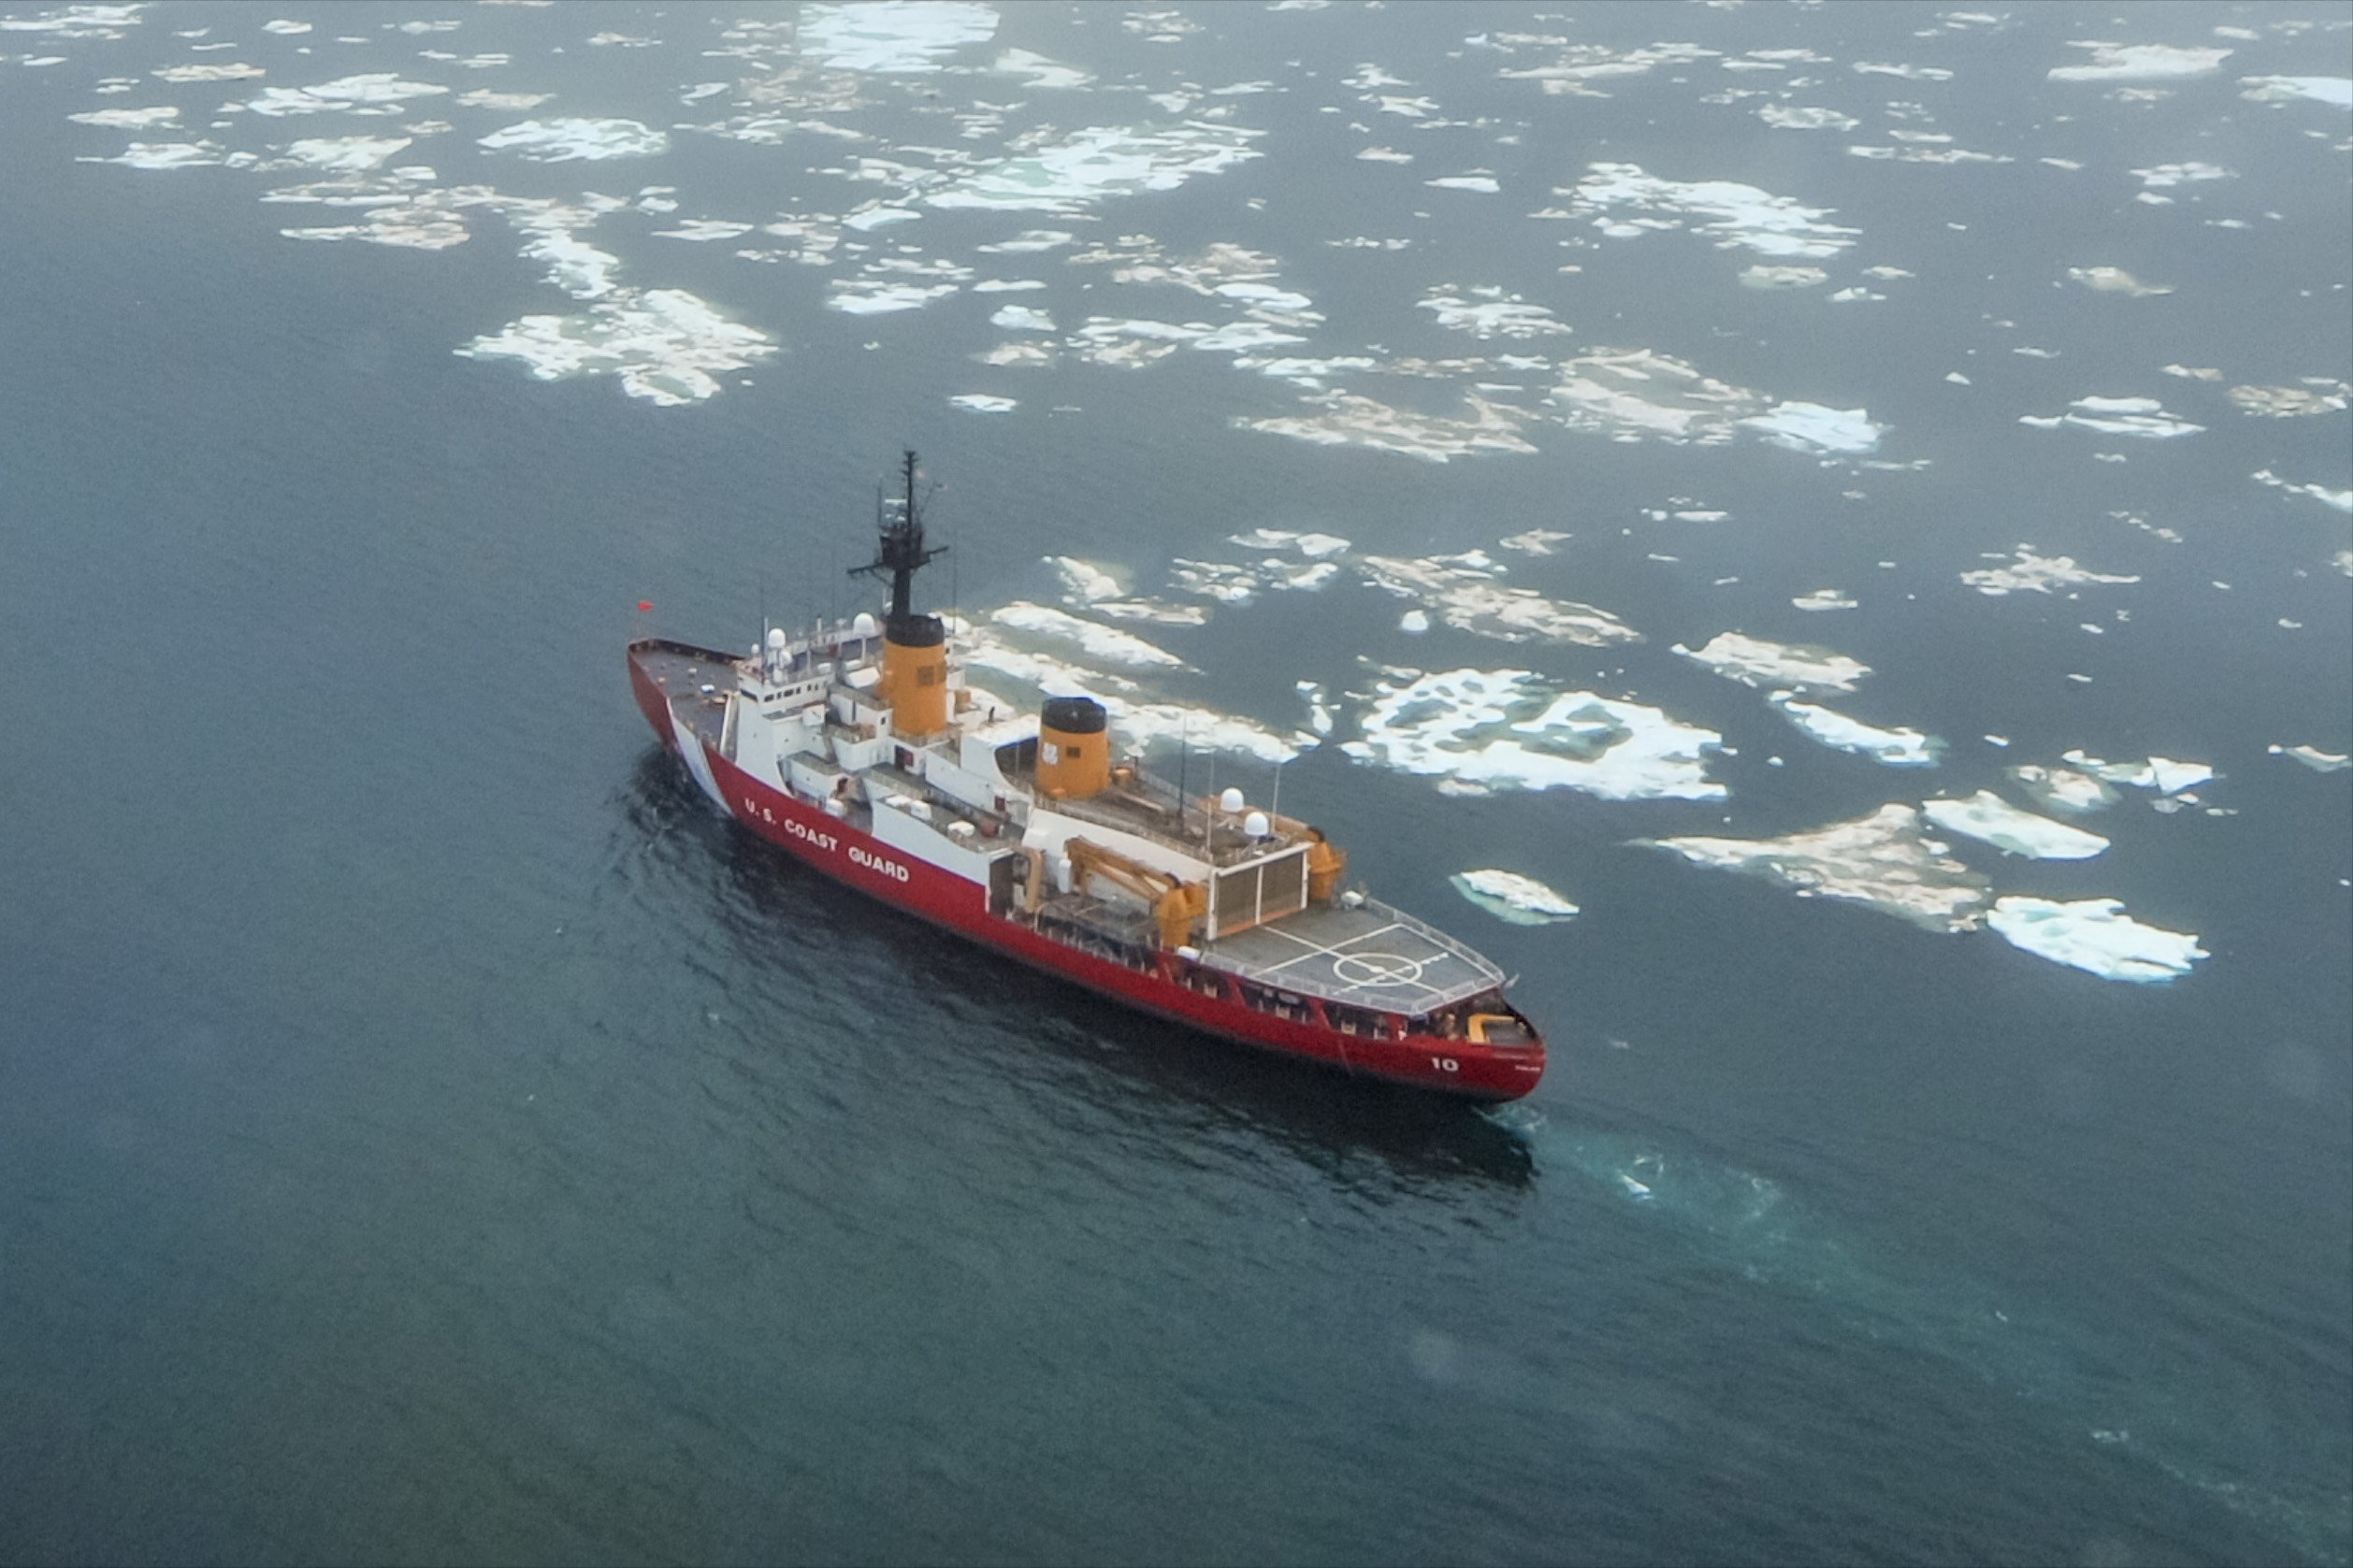 U.S. Coast Guard awards contract for first new heavy icebreaker in four decades